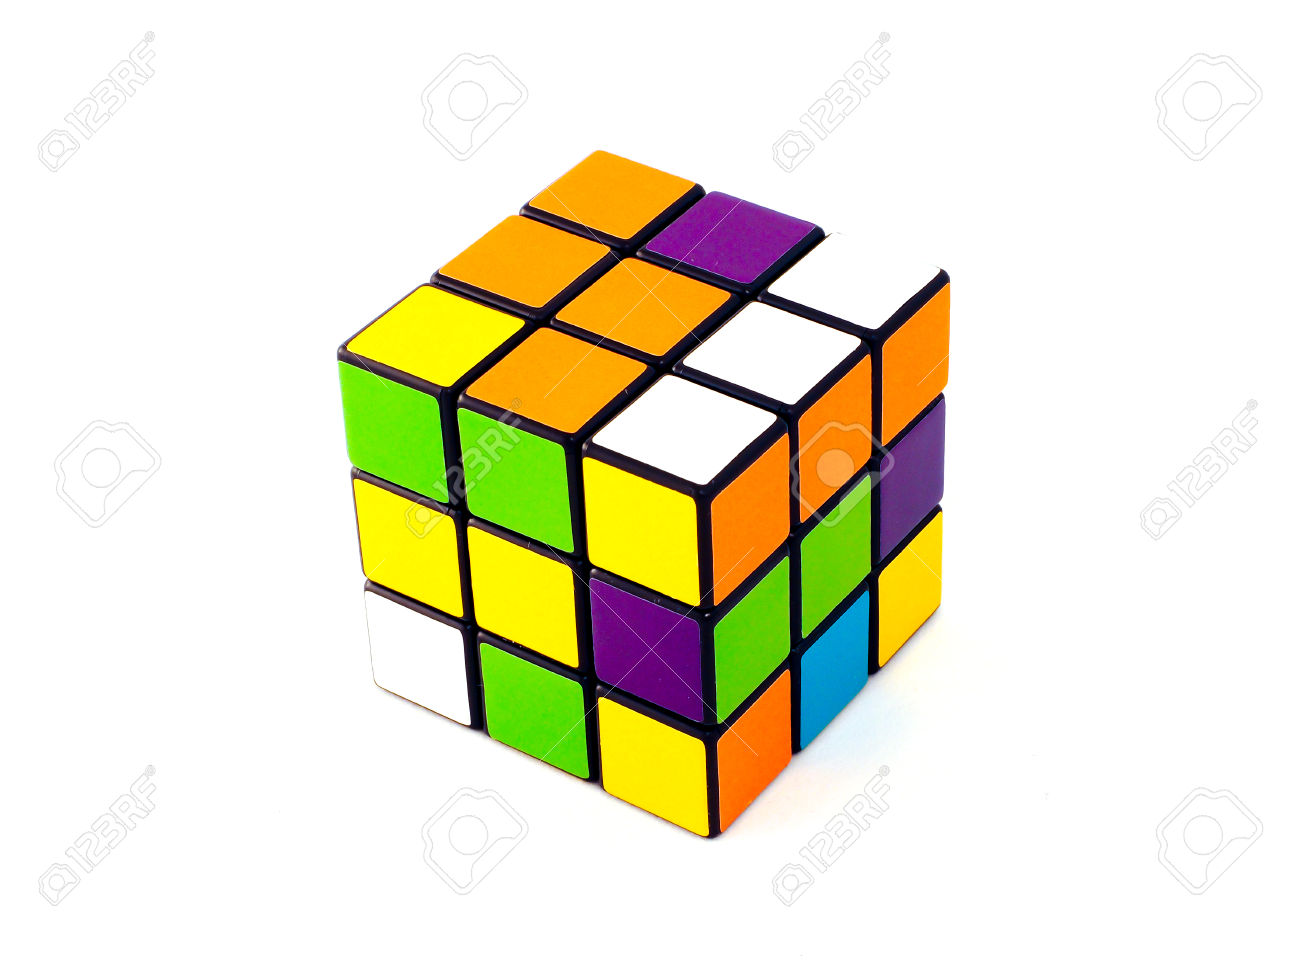 Rubik's Cube With Unusual Colors On White Background. It Was.